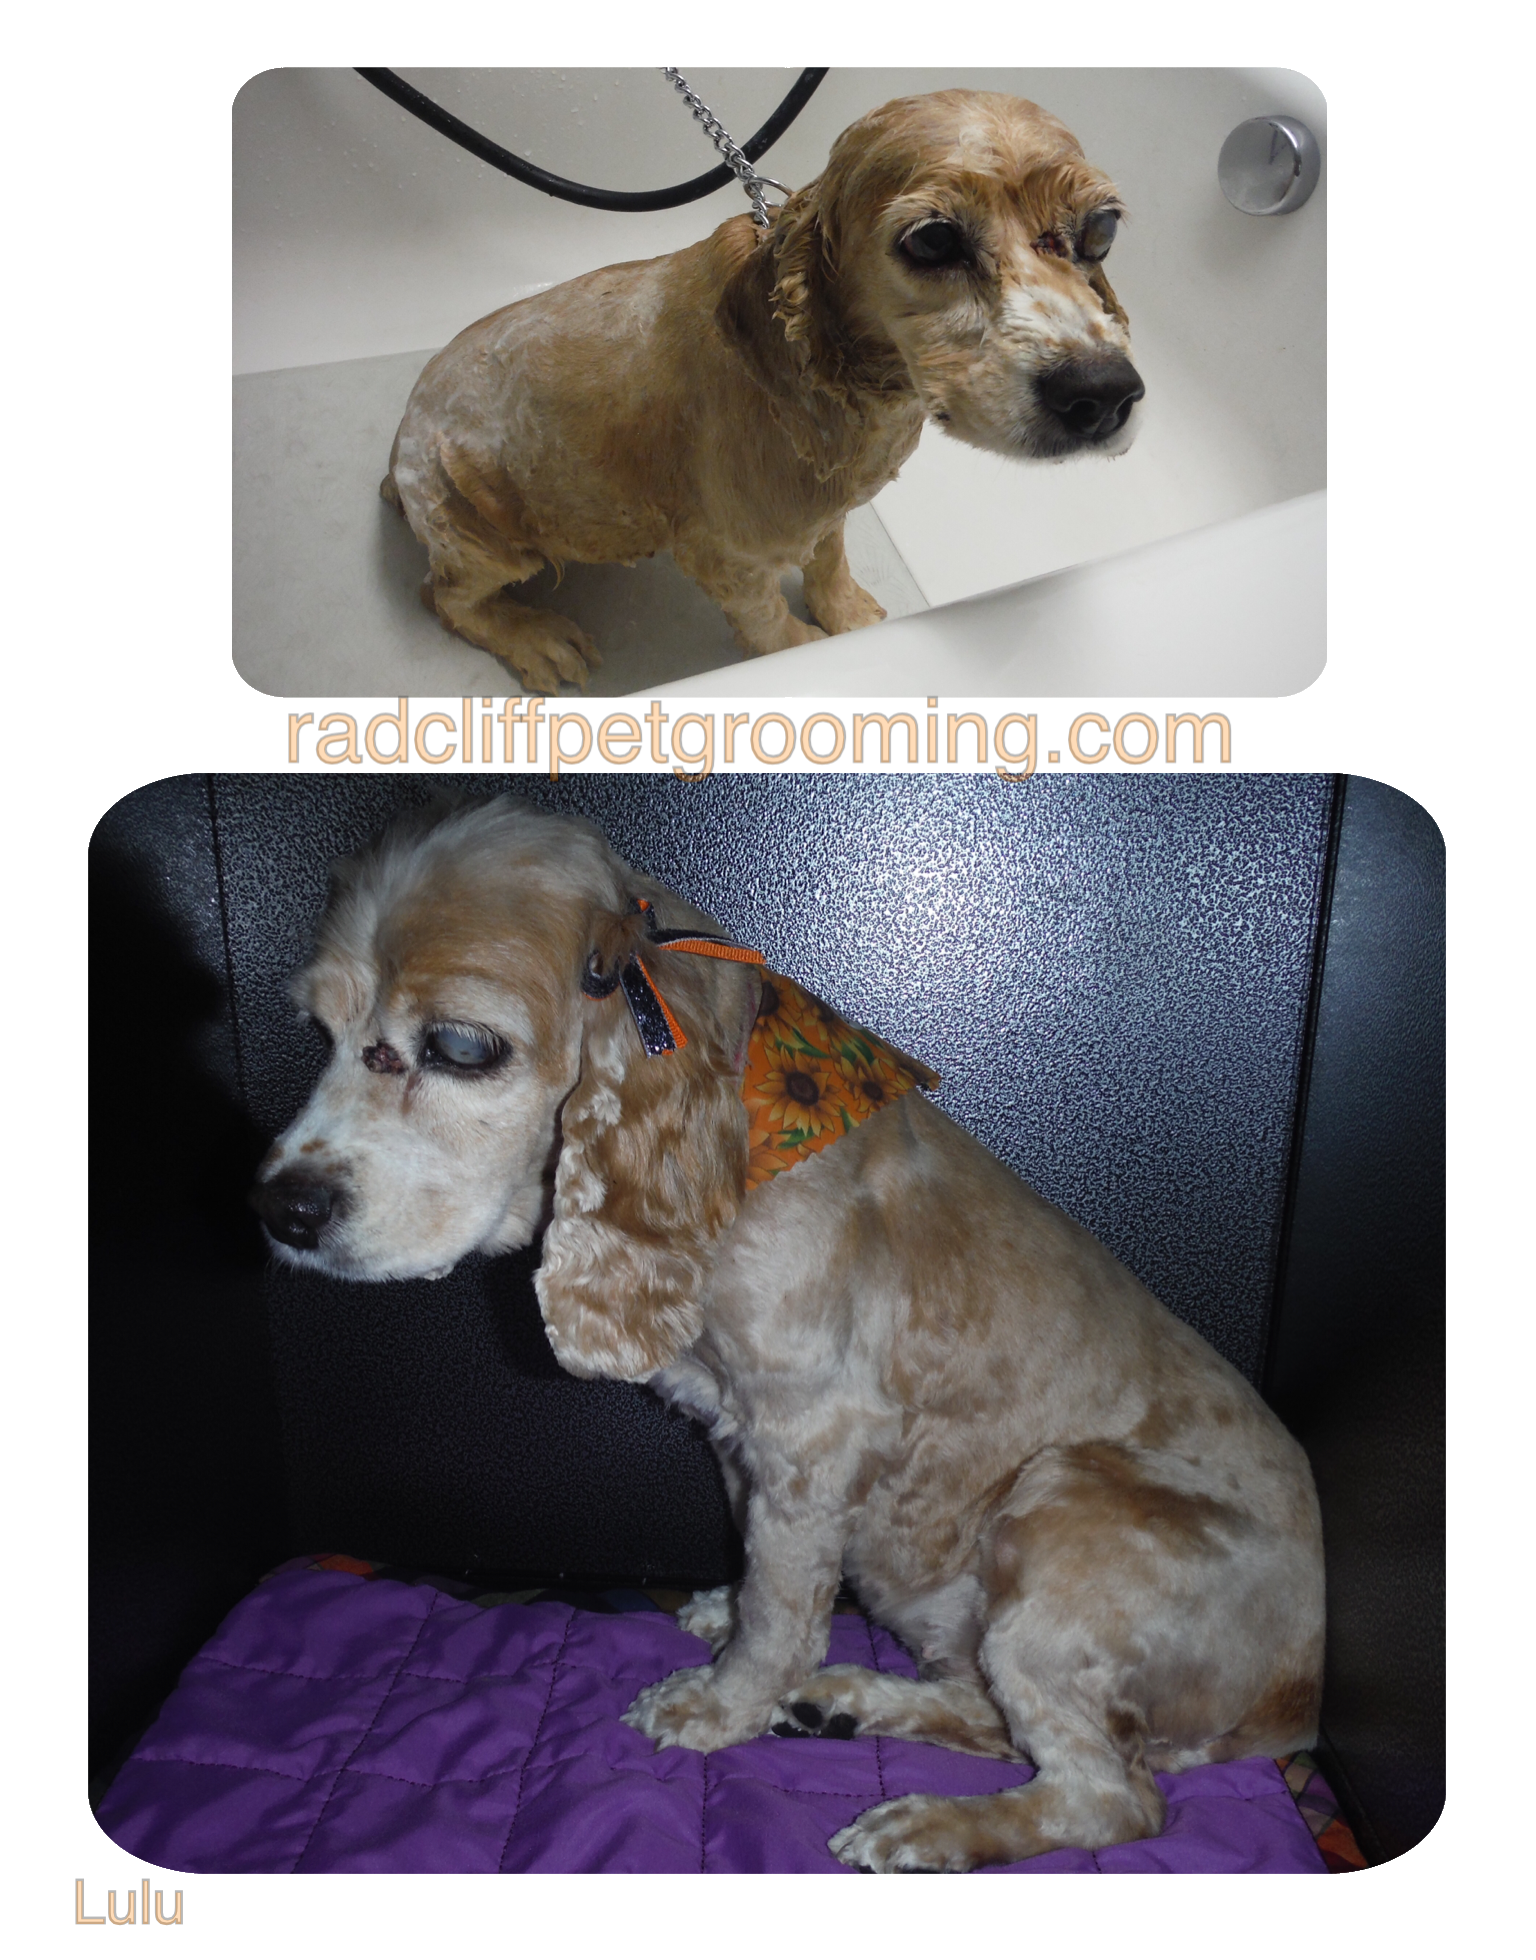 Pretty Paws llc, dog grooming, Radcliff Ky www.radcliffpetgrooming.com